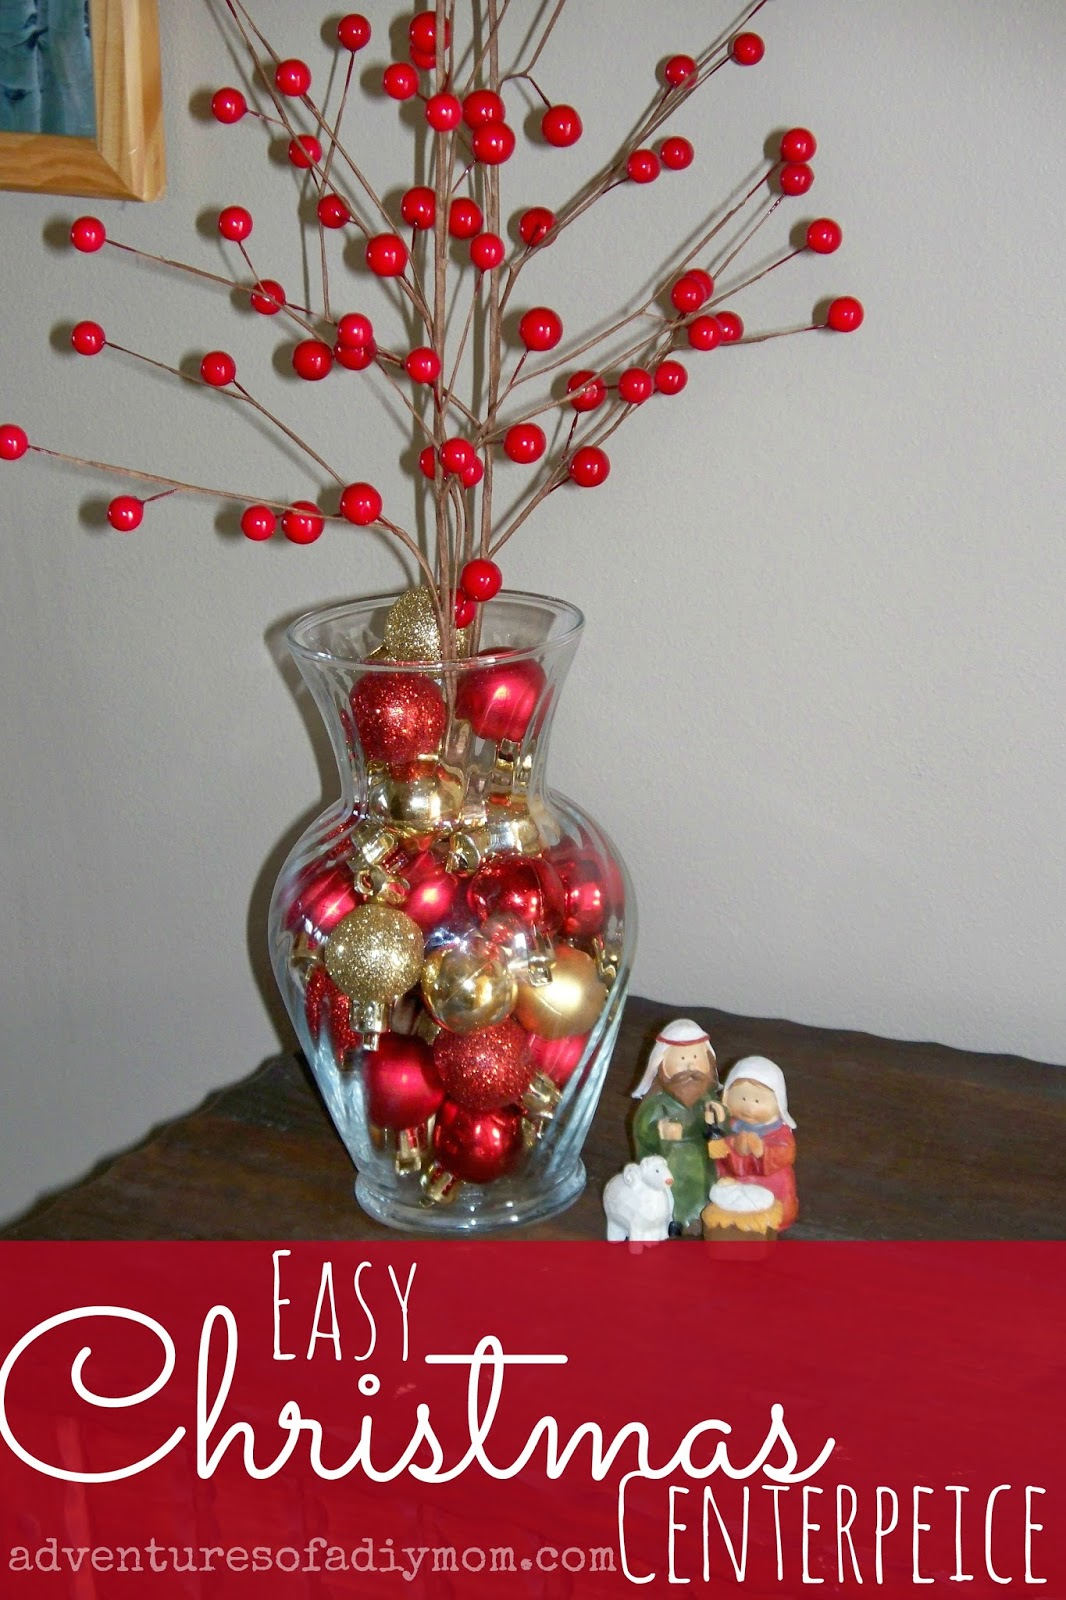 Easy Christmas Centerpiece Adventures Of A Diy Mom